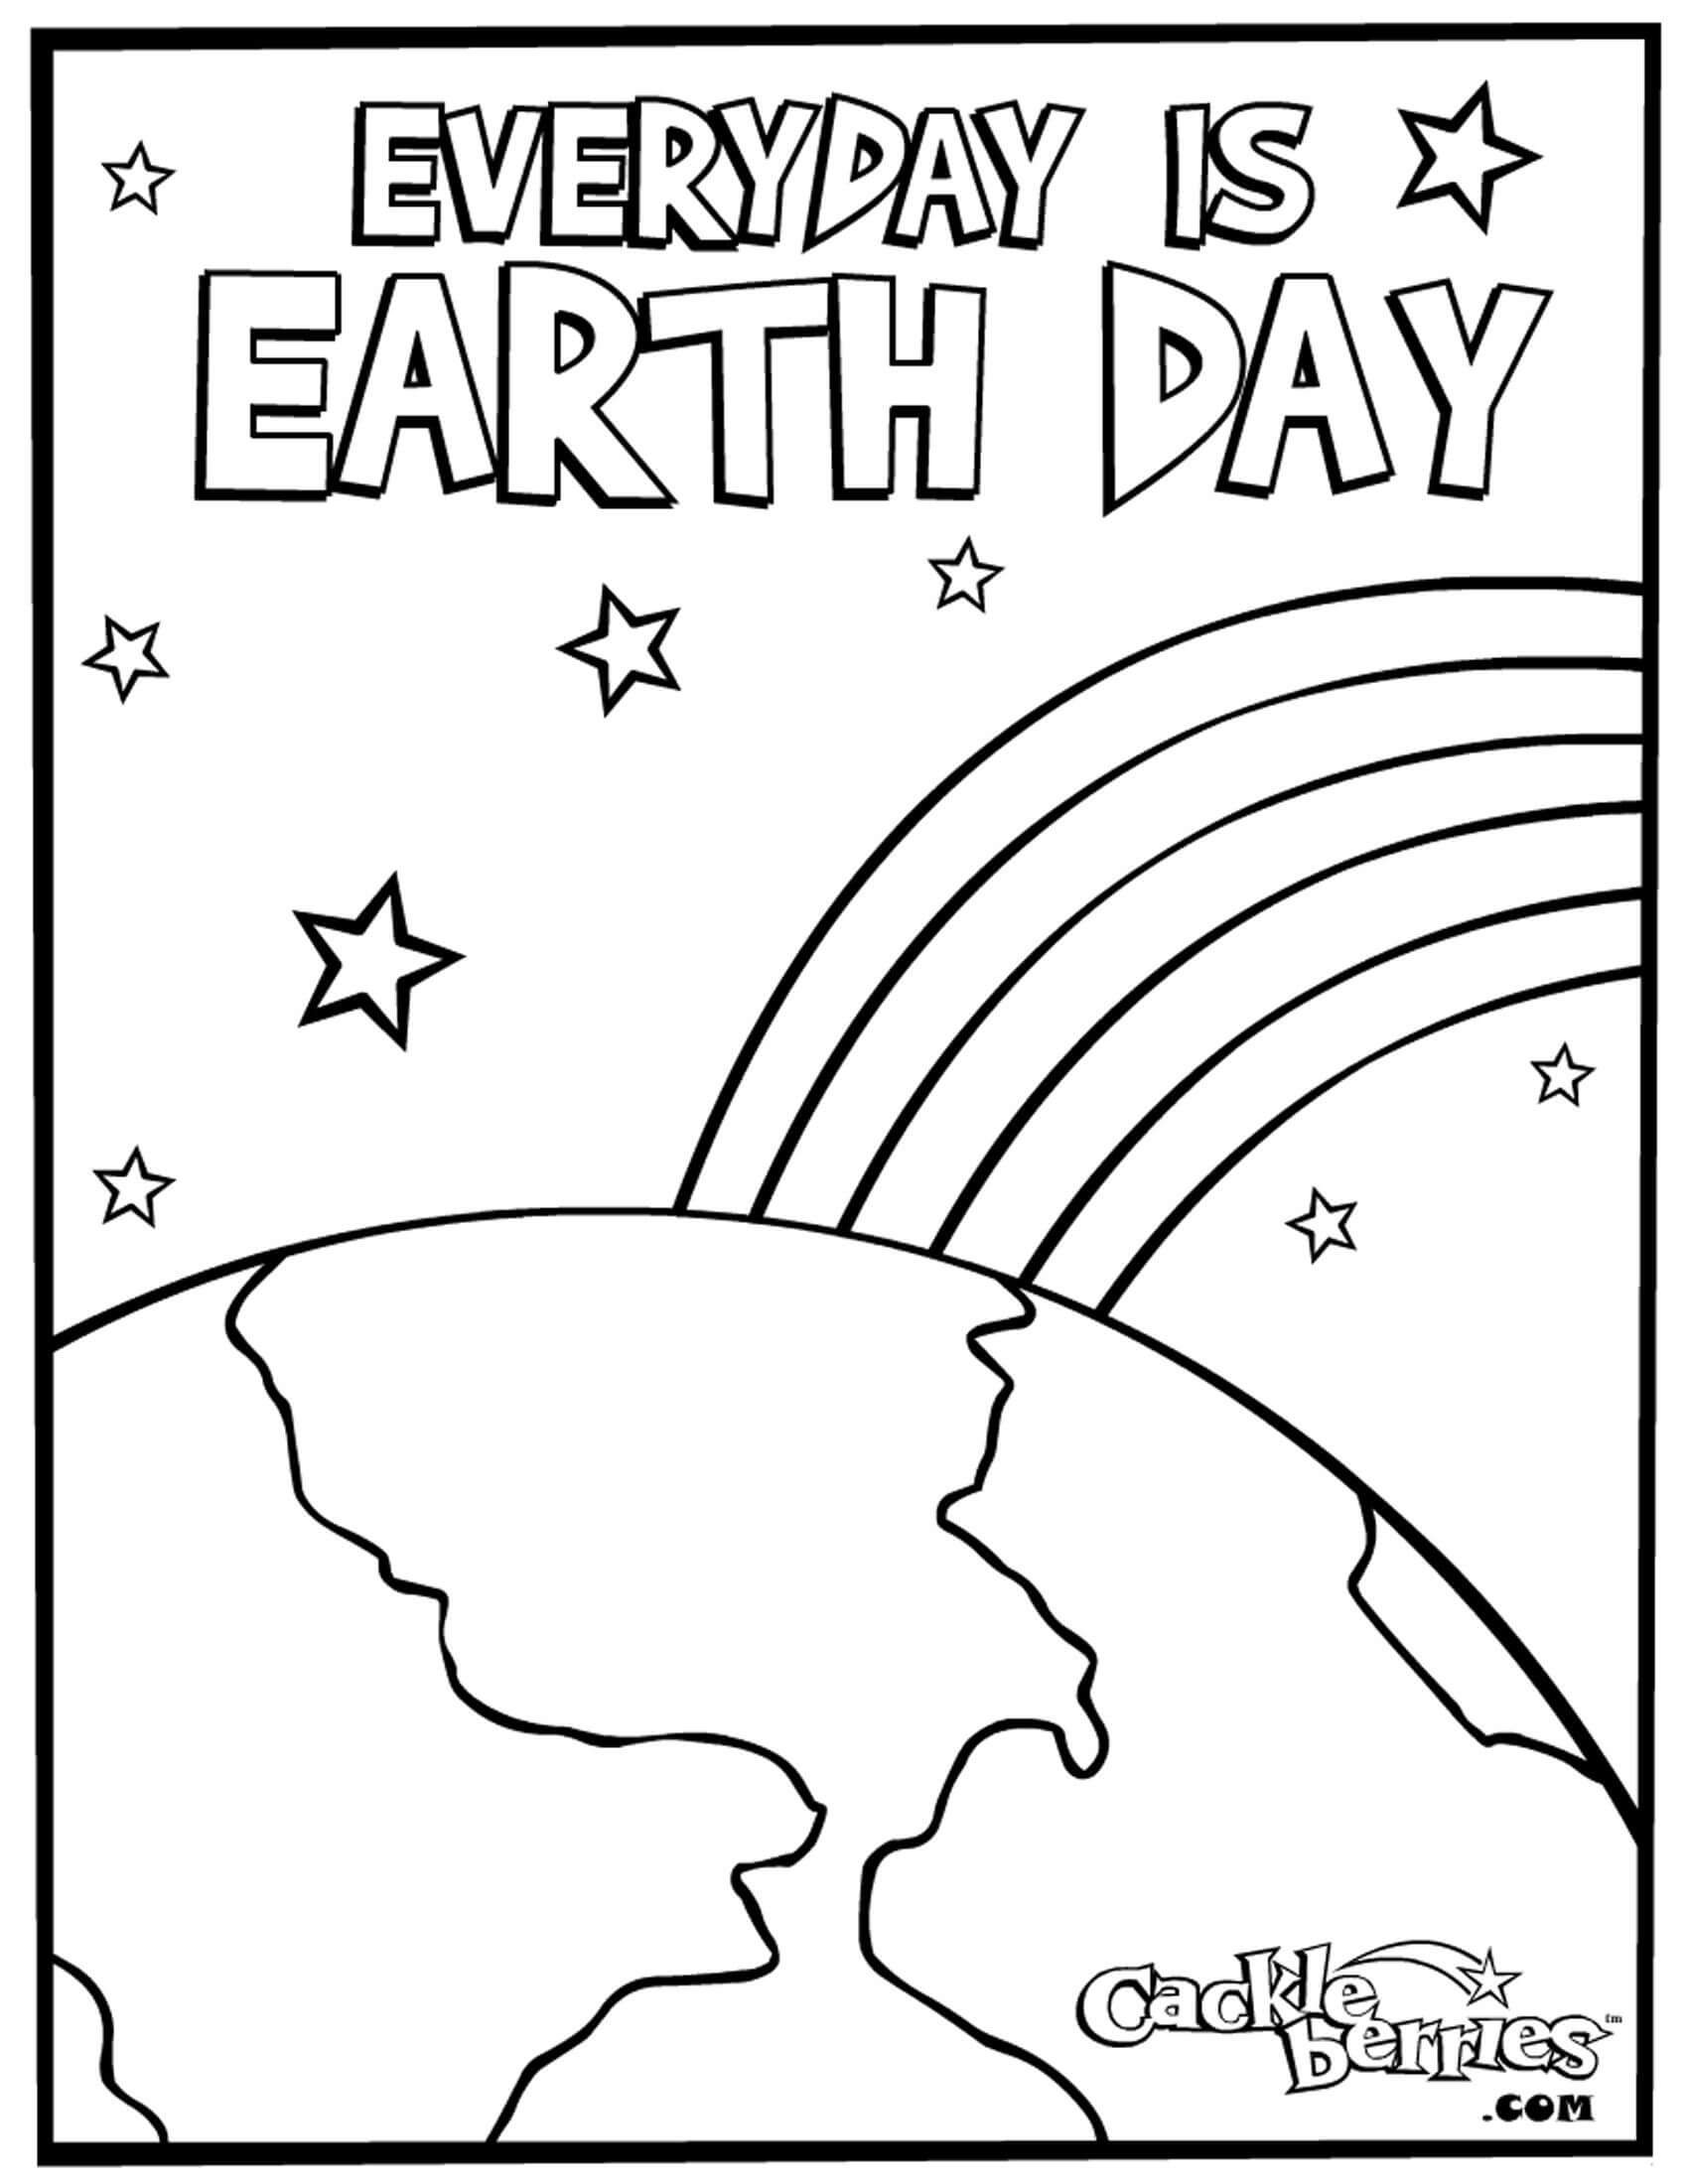 21 Printable Earth Day Coloring Pages - Holiday Vault